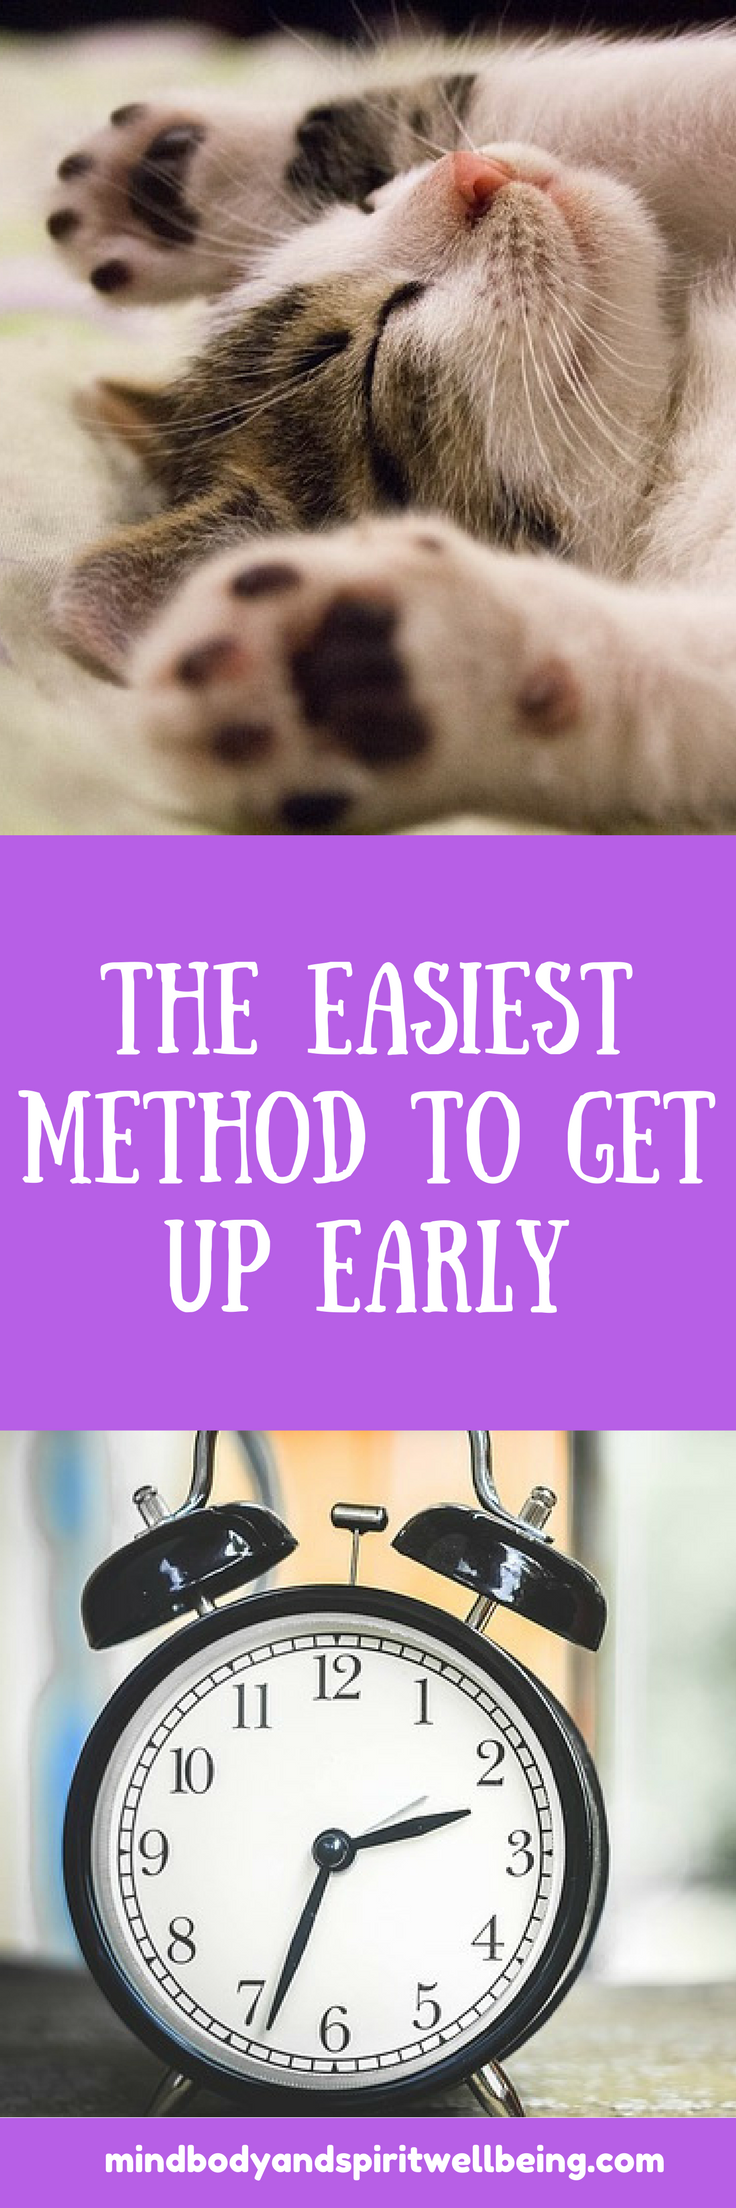 get up early, wake up early, stress relief, healthy habits, groggy, healthy living